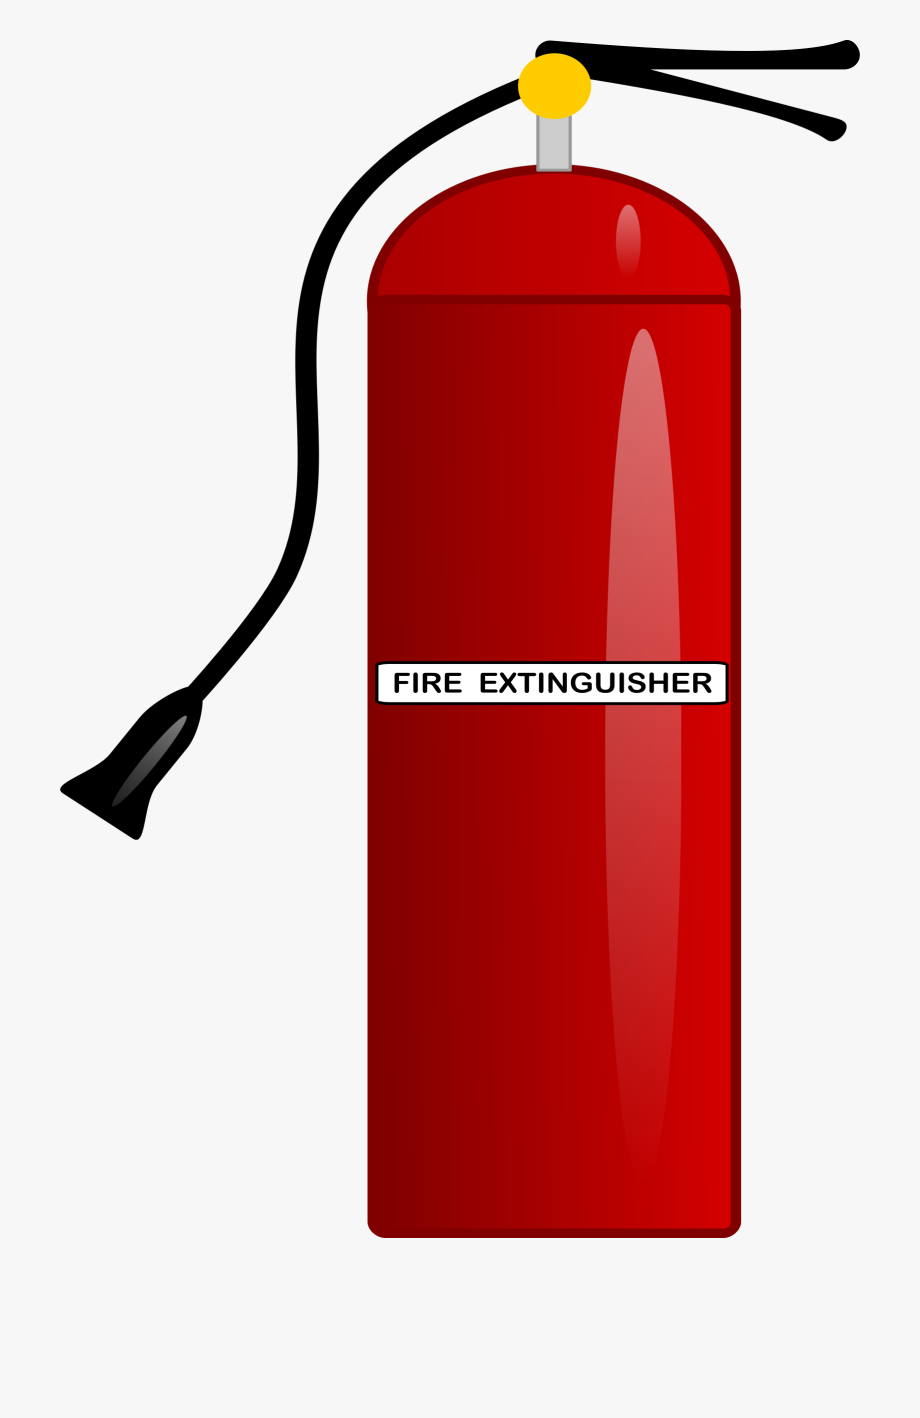 Extinguisher Png Transparent.